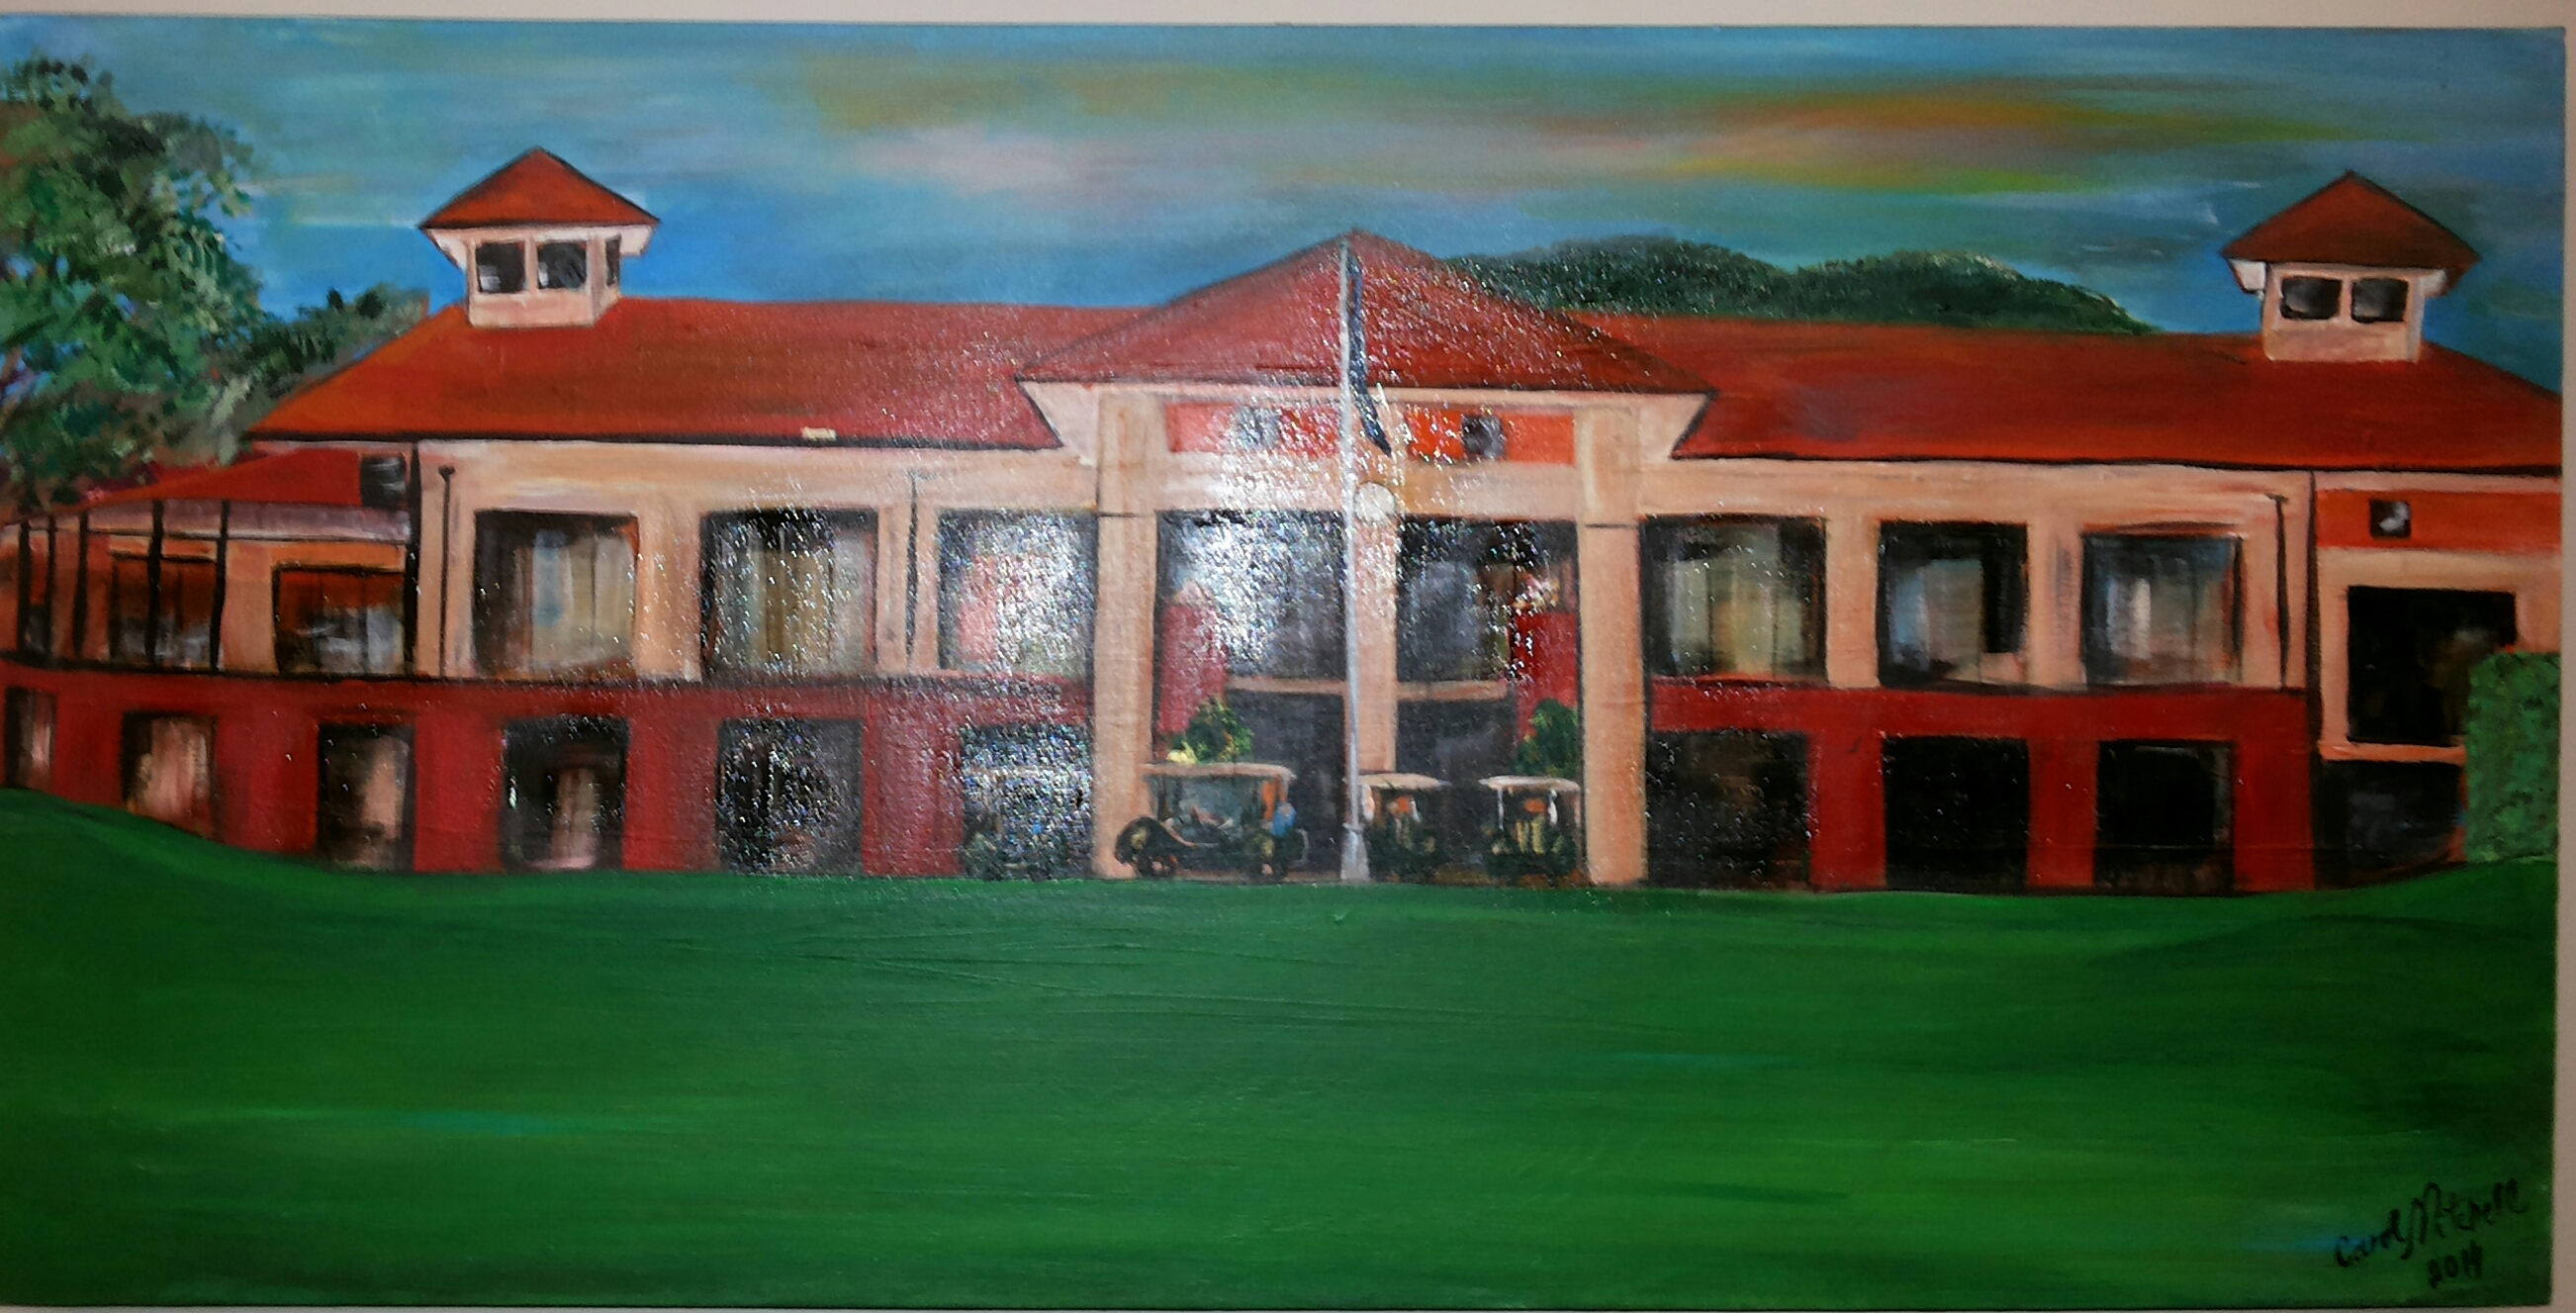 R.C.G.C. CLUBHOUSE